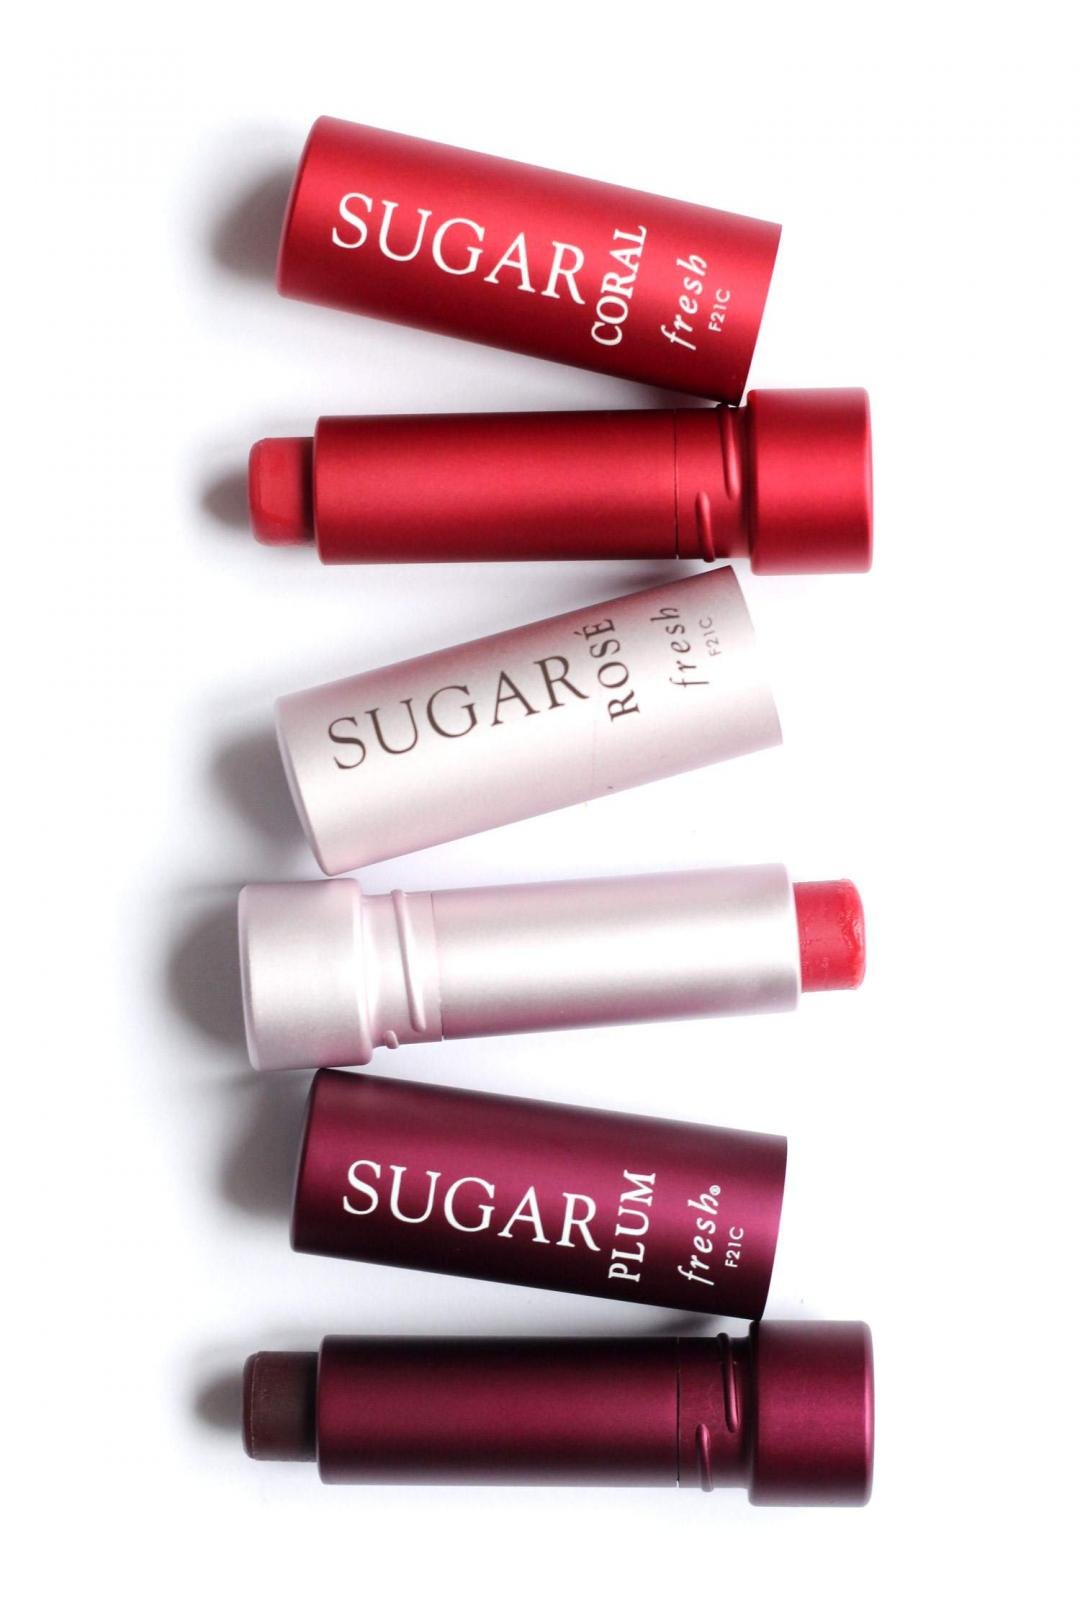 fresh-sugar-lip-treatment-review-plum-rose-coral-lip-balm